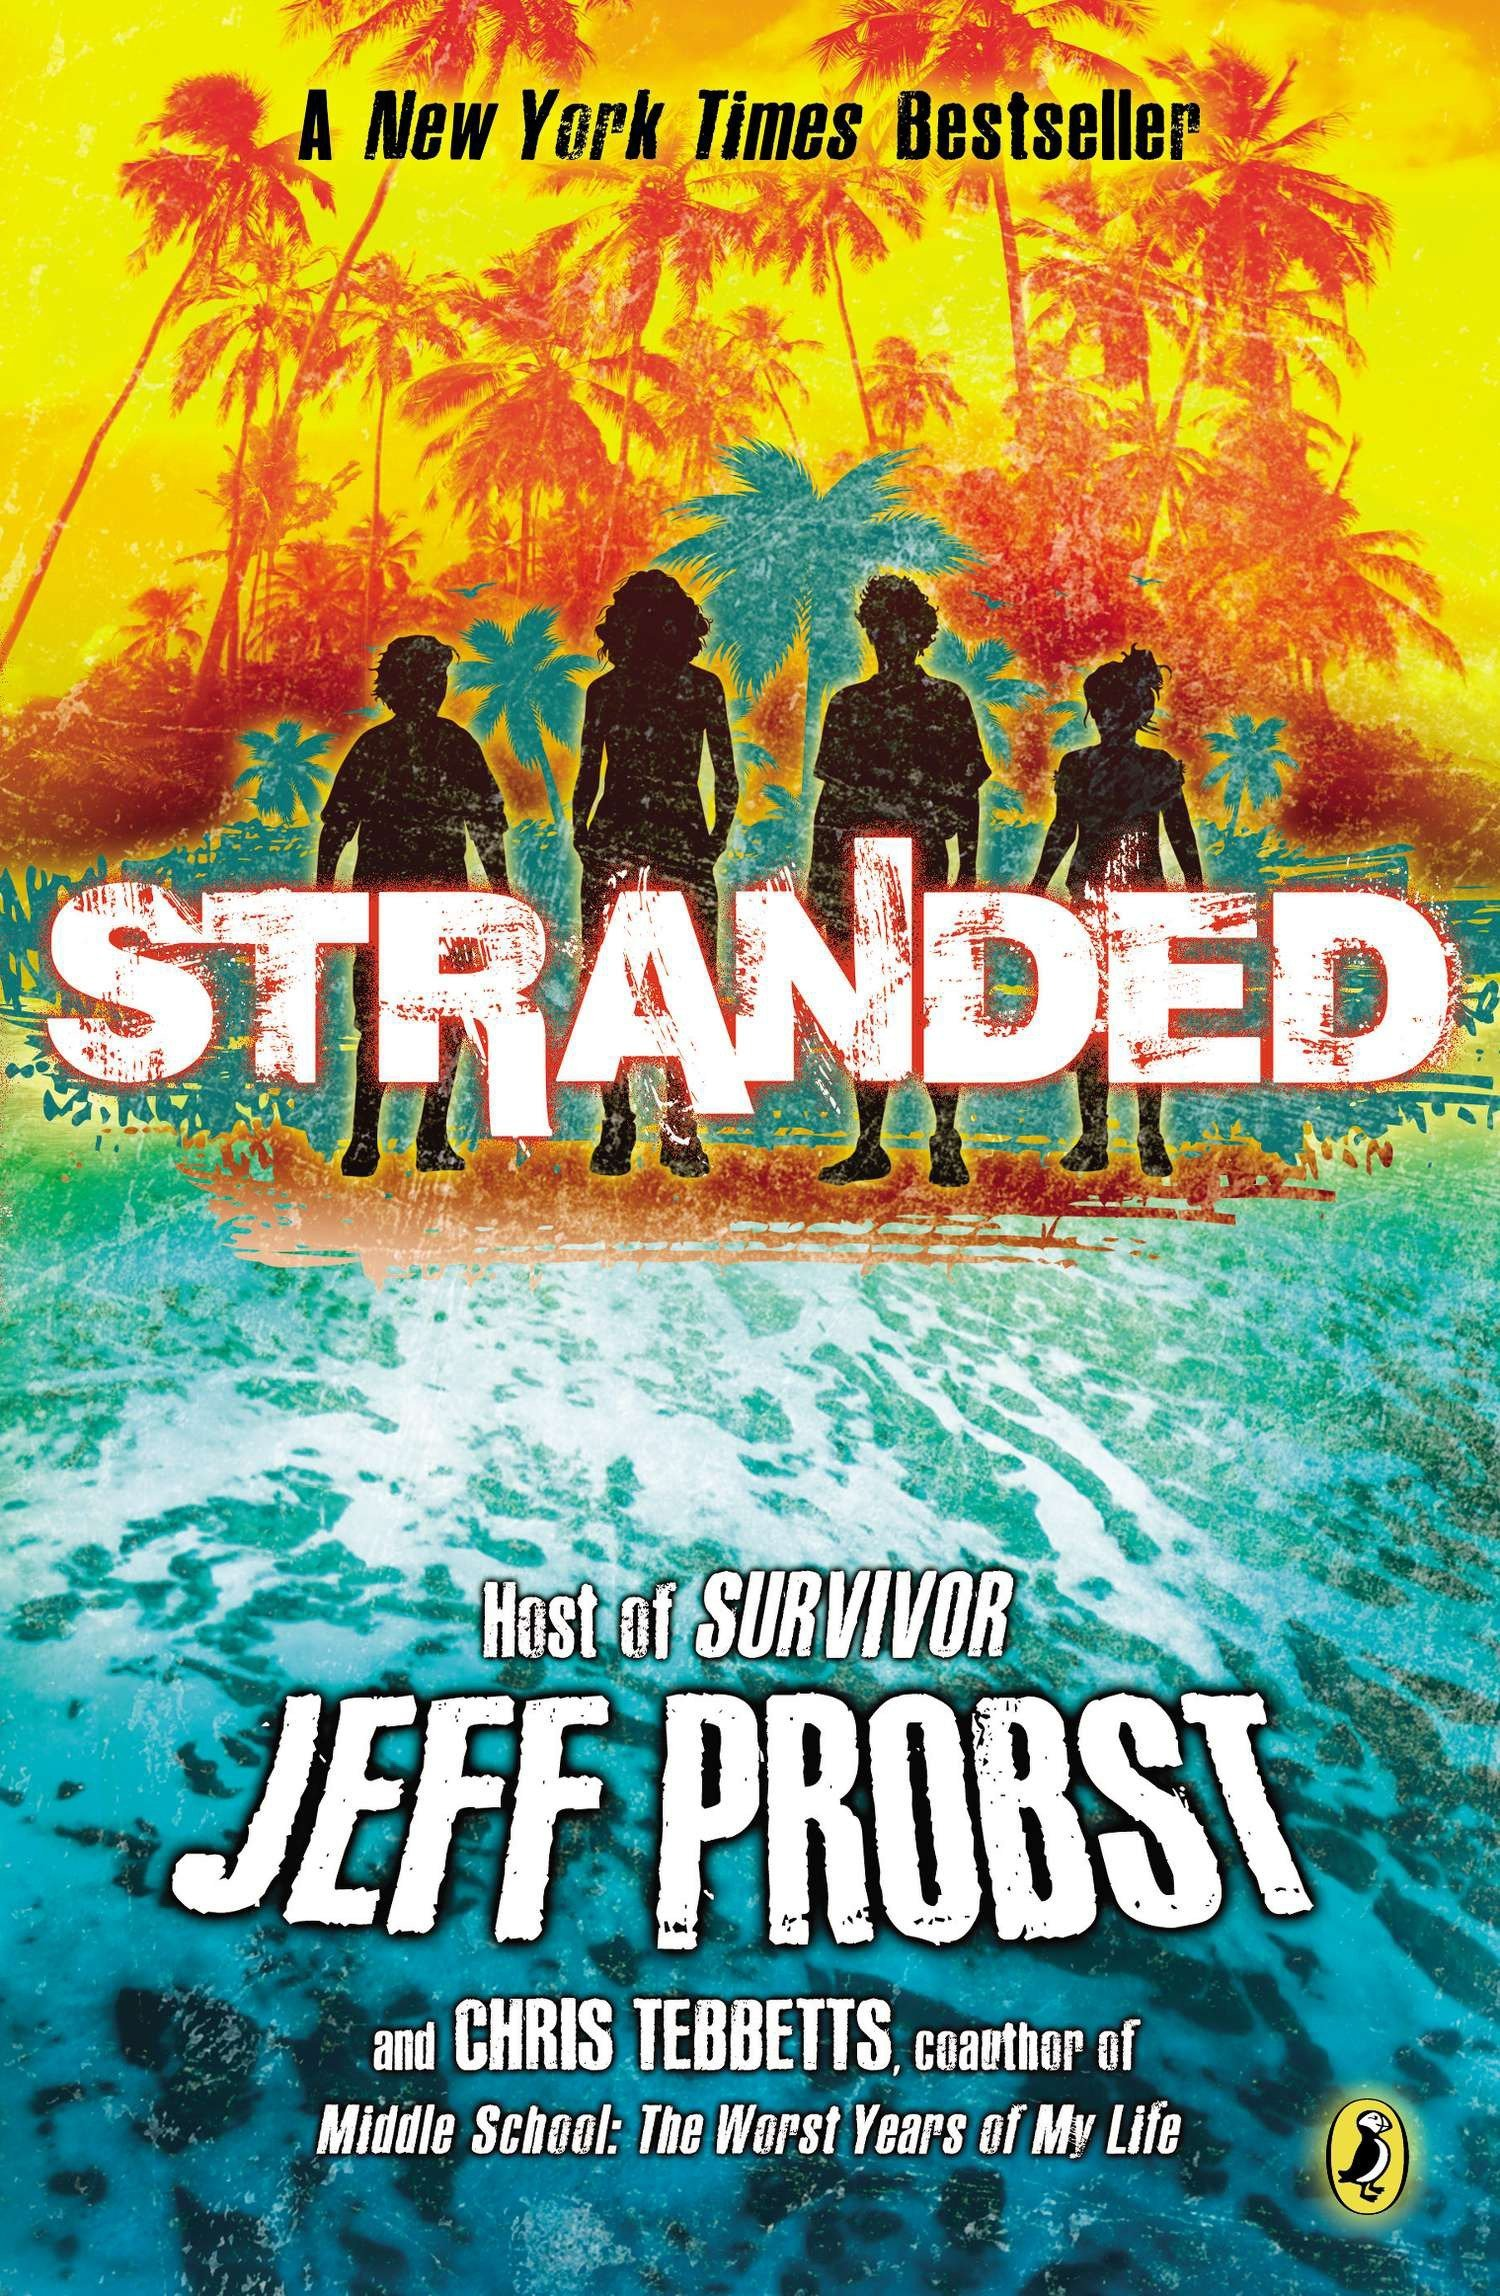 Stranded: Probst, Jeff, Chris Tebbetts: 9780545580632: Amazon.com: Books